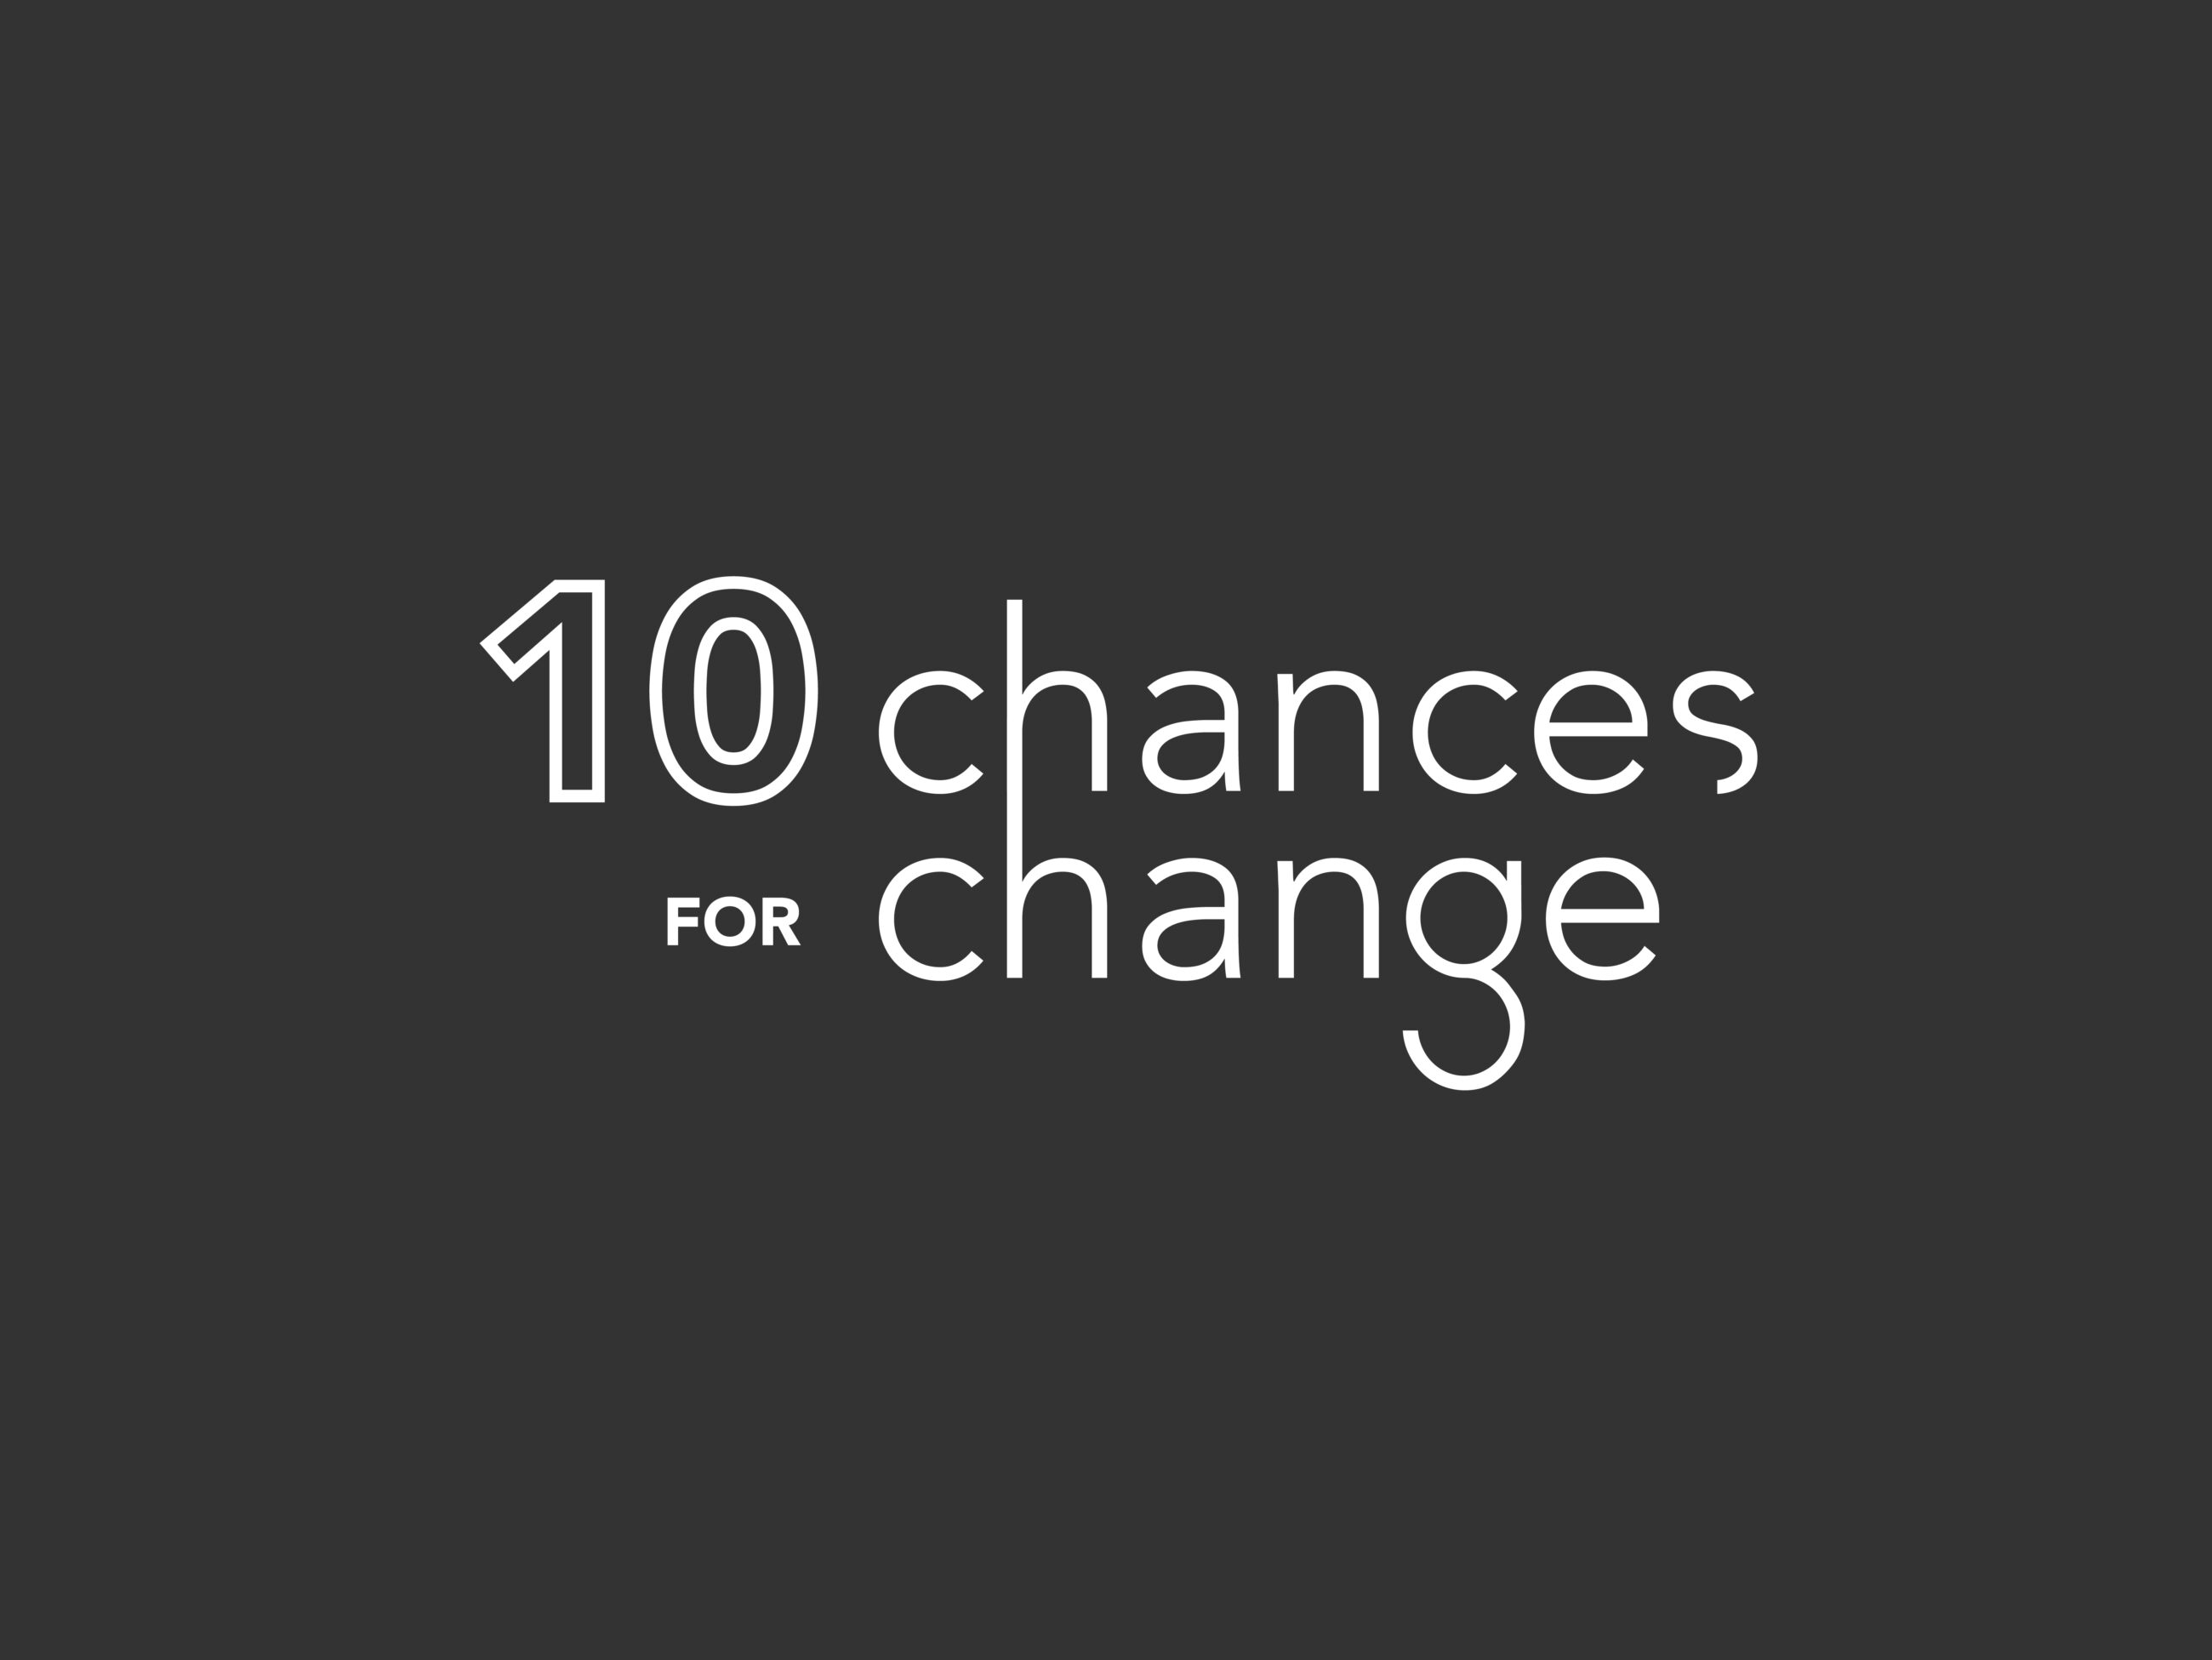 DAIS - Ten Year Project (2020 - 2029) 10 Chances for Change